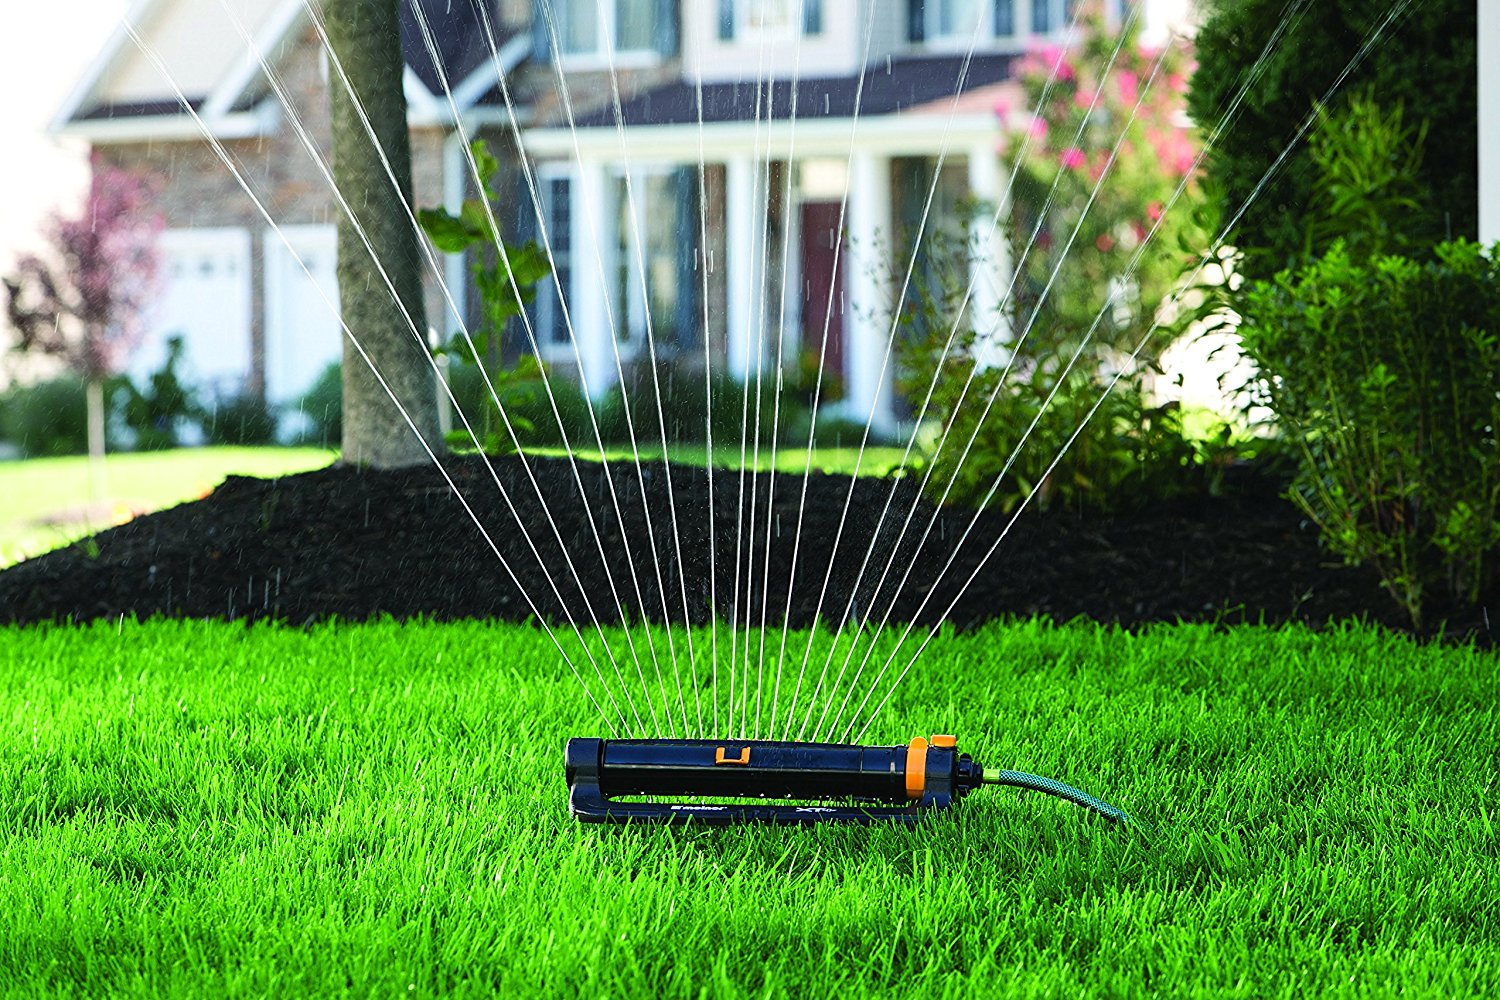 Forum on this topic: How to Buy Lawn Sprinklers, how-to-buy-lawn-sprinklers/